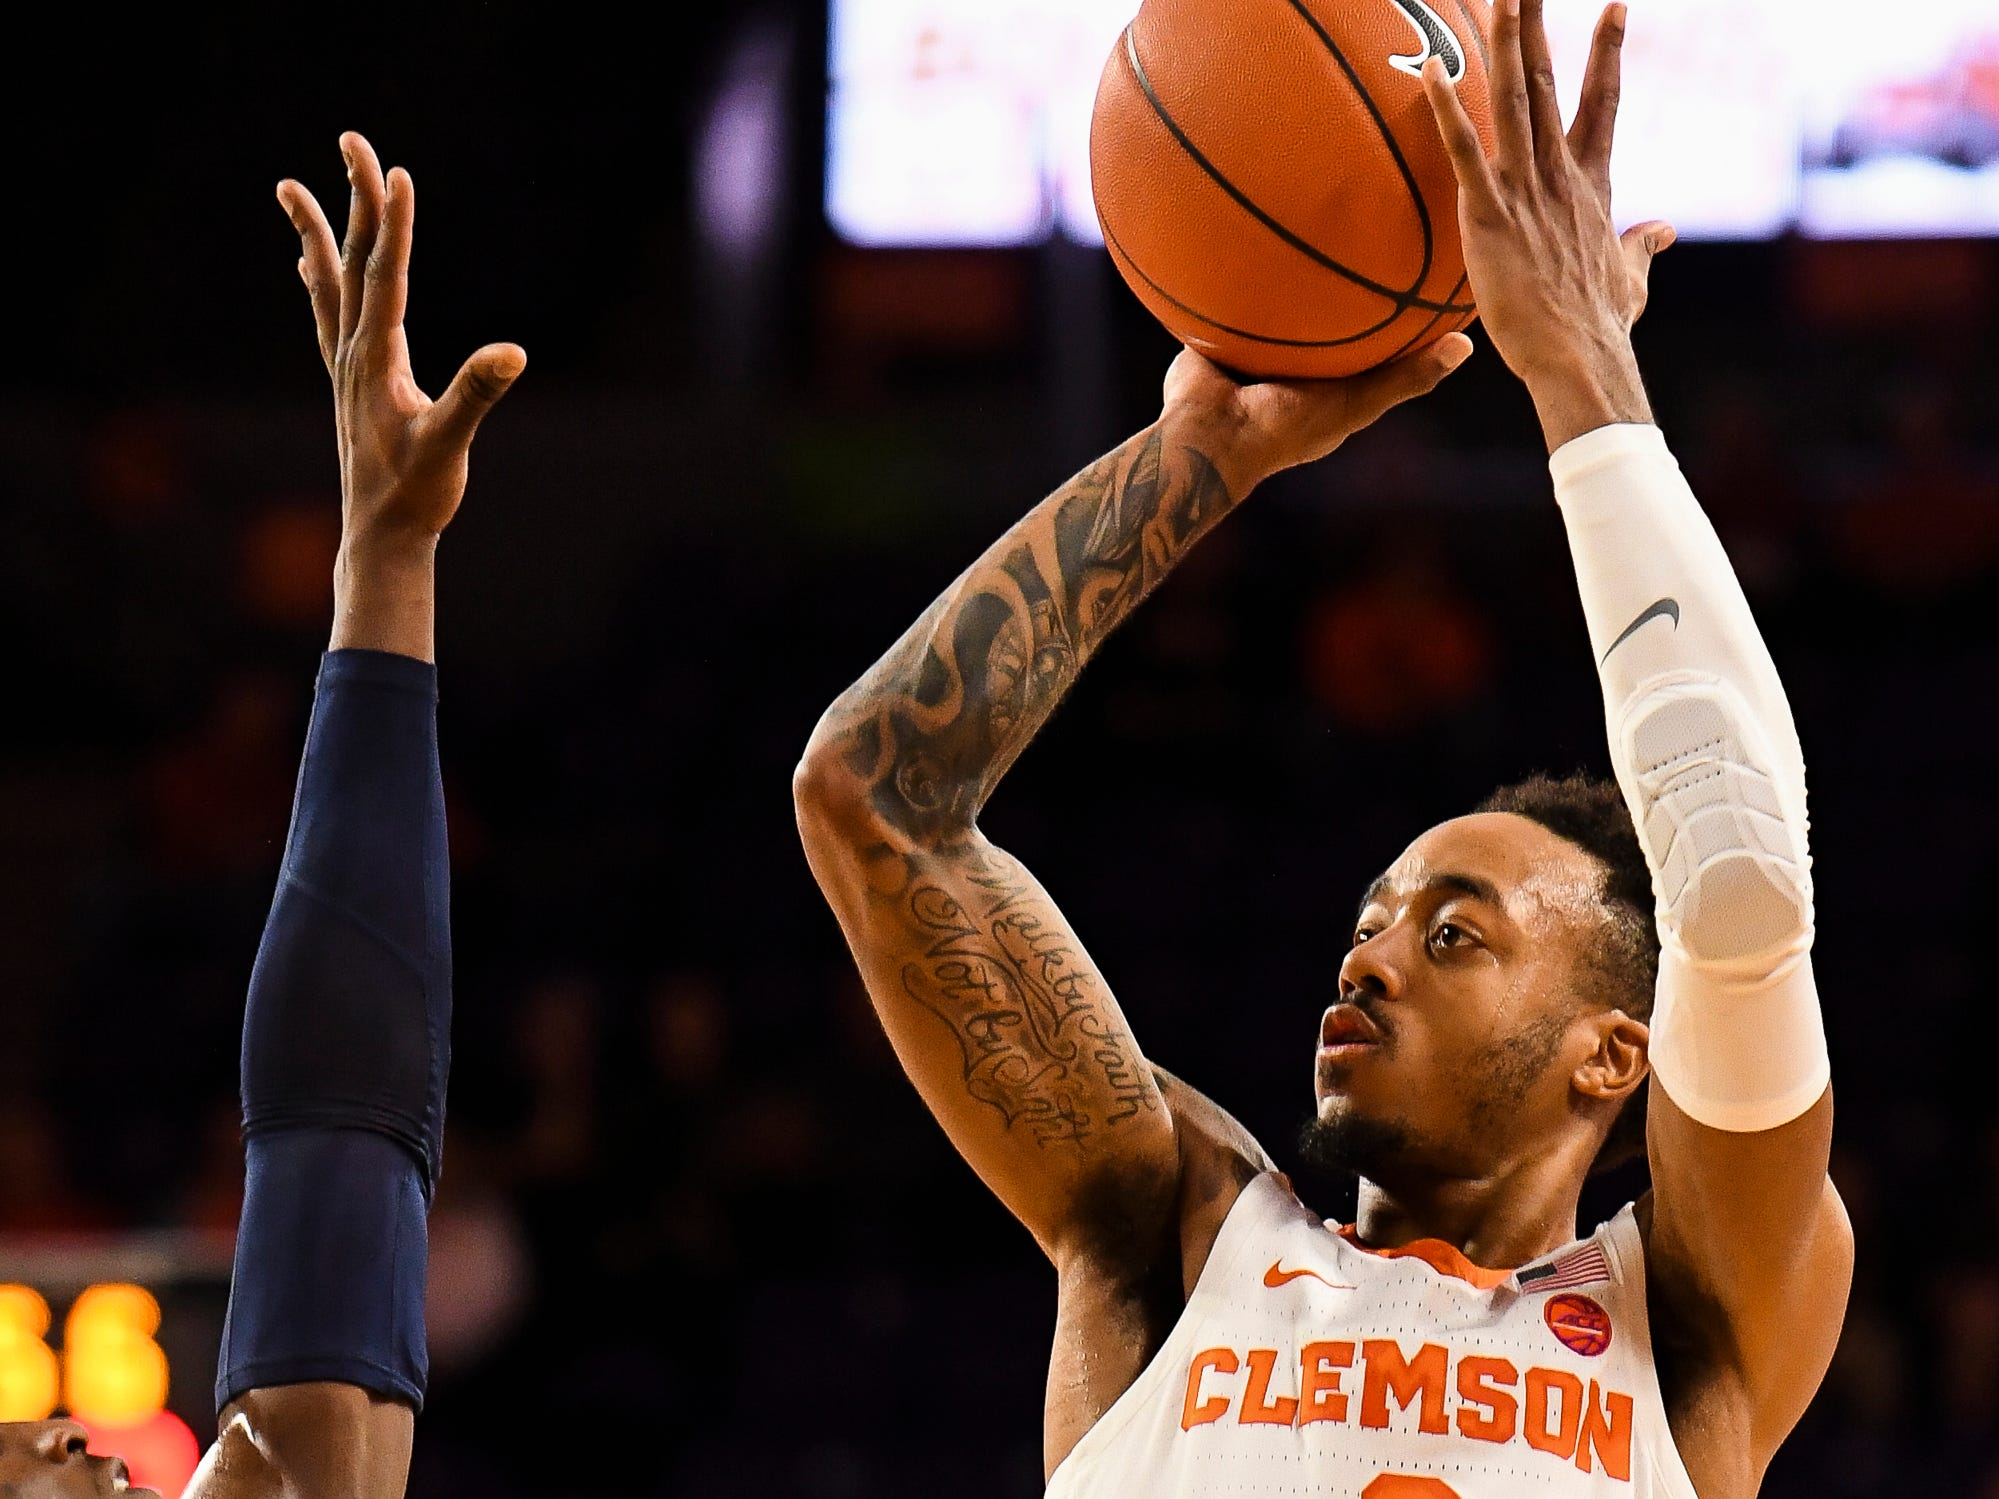 Clemson guard Marcquise Reed (2) attempts to shoot the ball during their game against Pittsburgh at Littlejohn Stadium on Tuesday, Jan. 29, 2019.